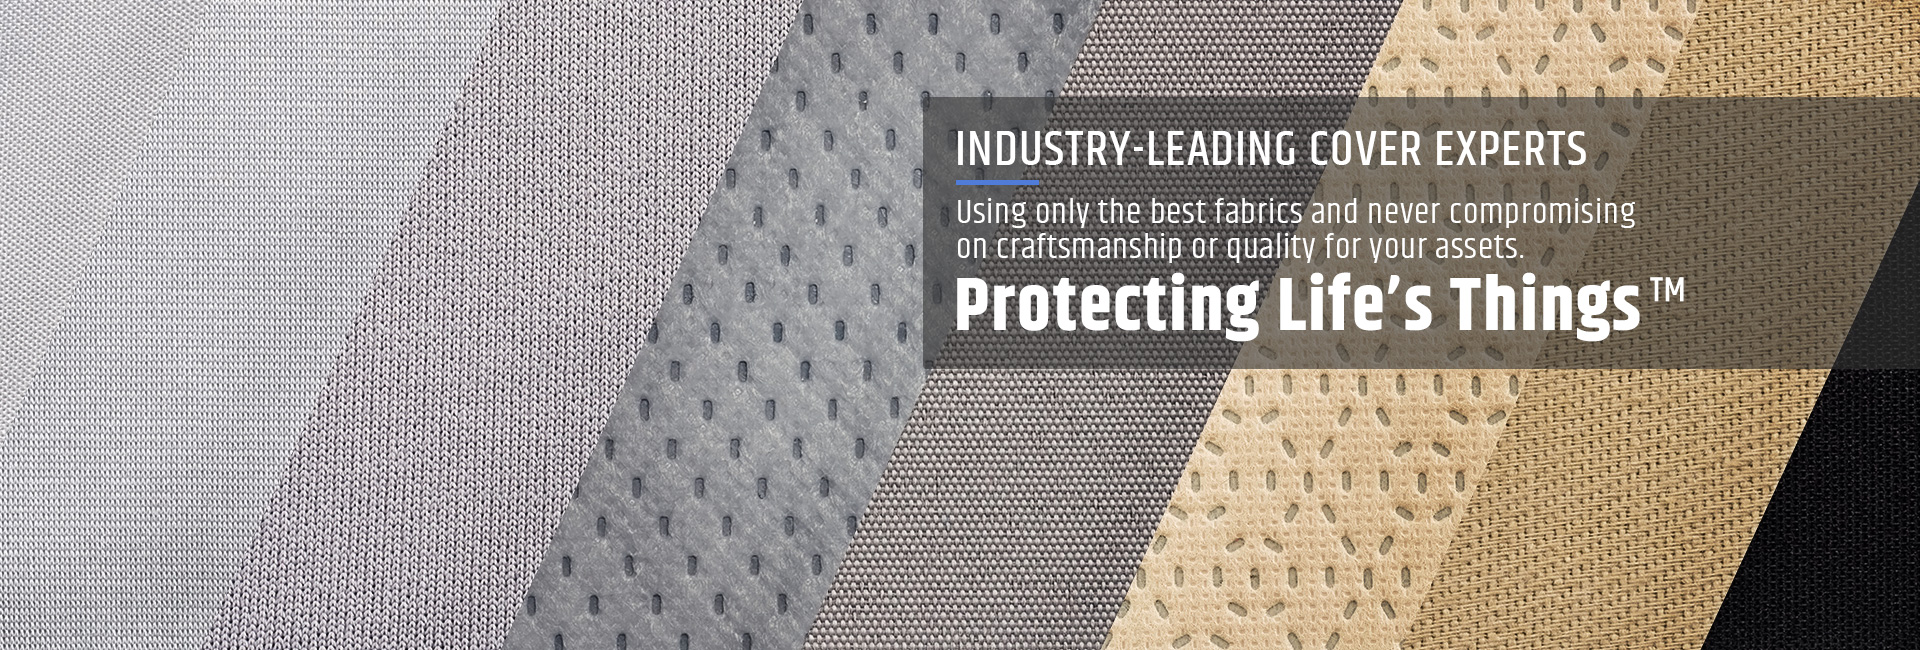 Industry-leading cover experts